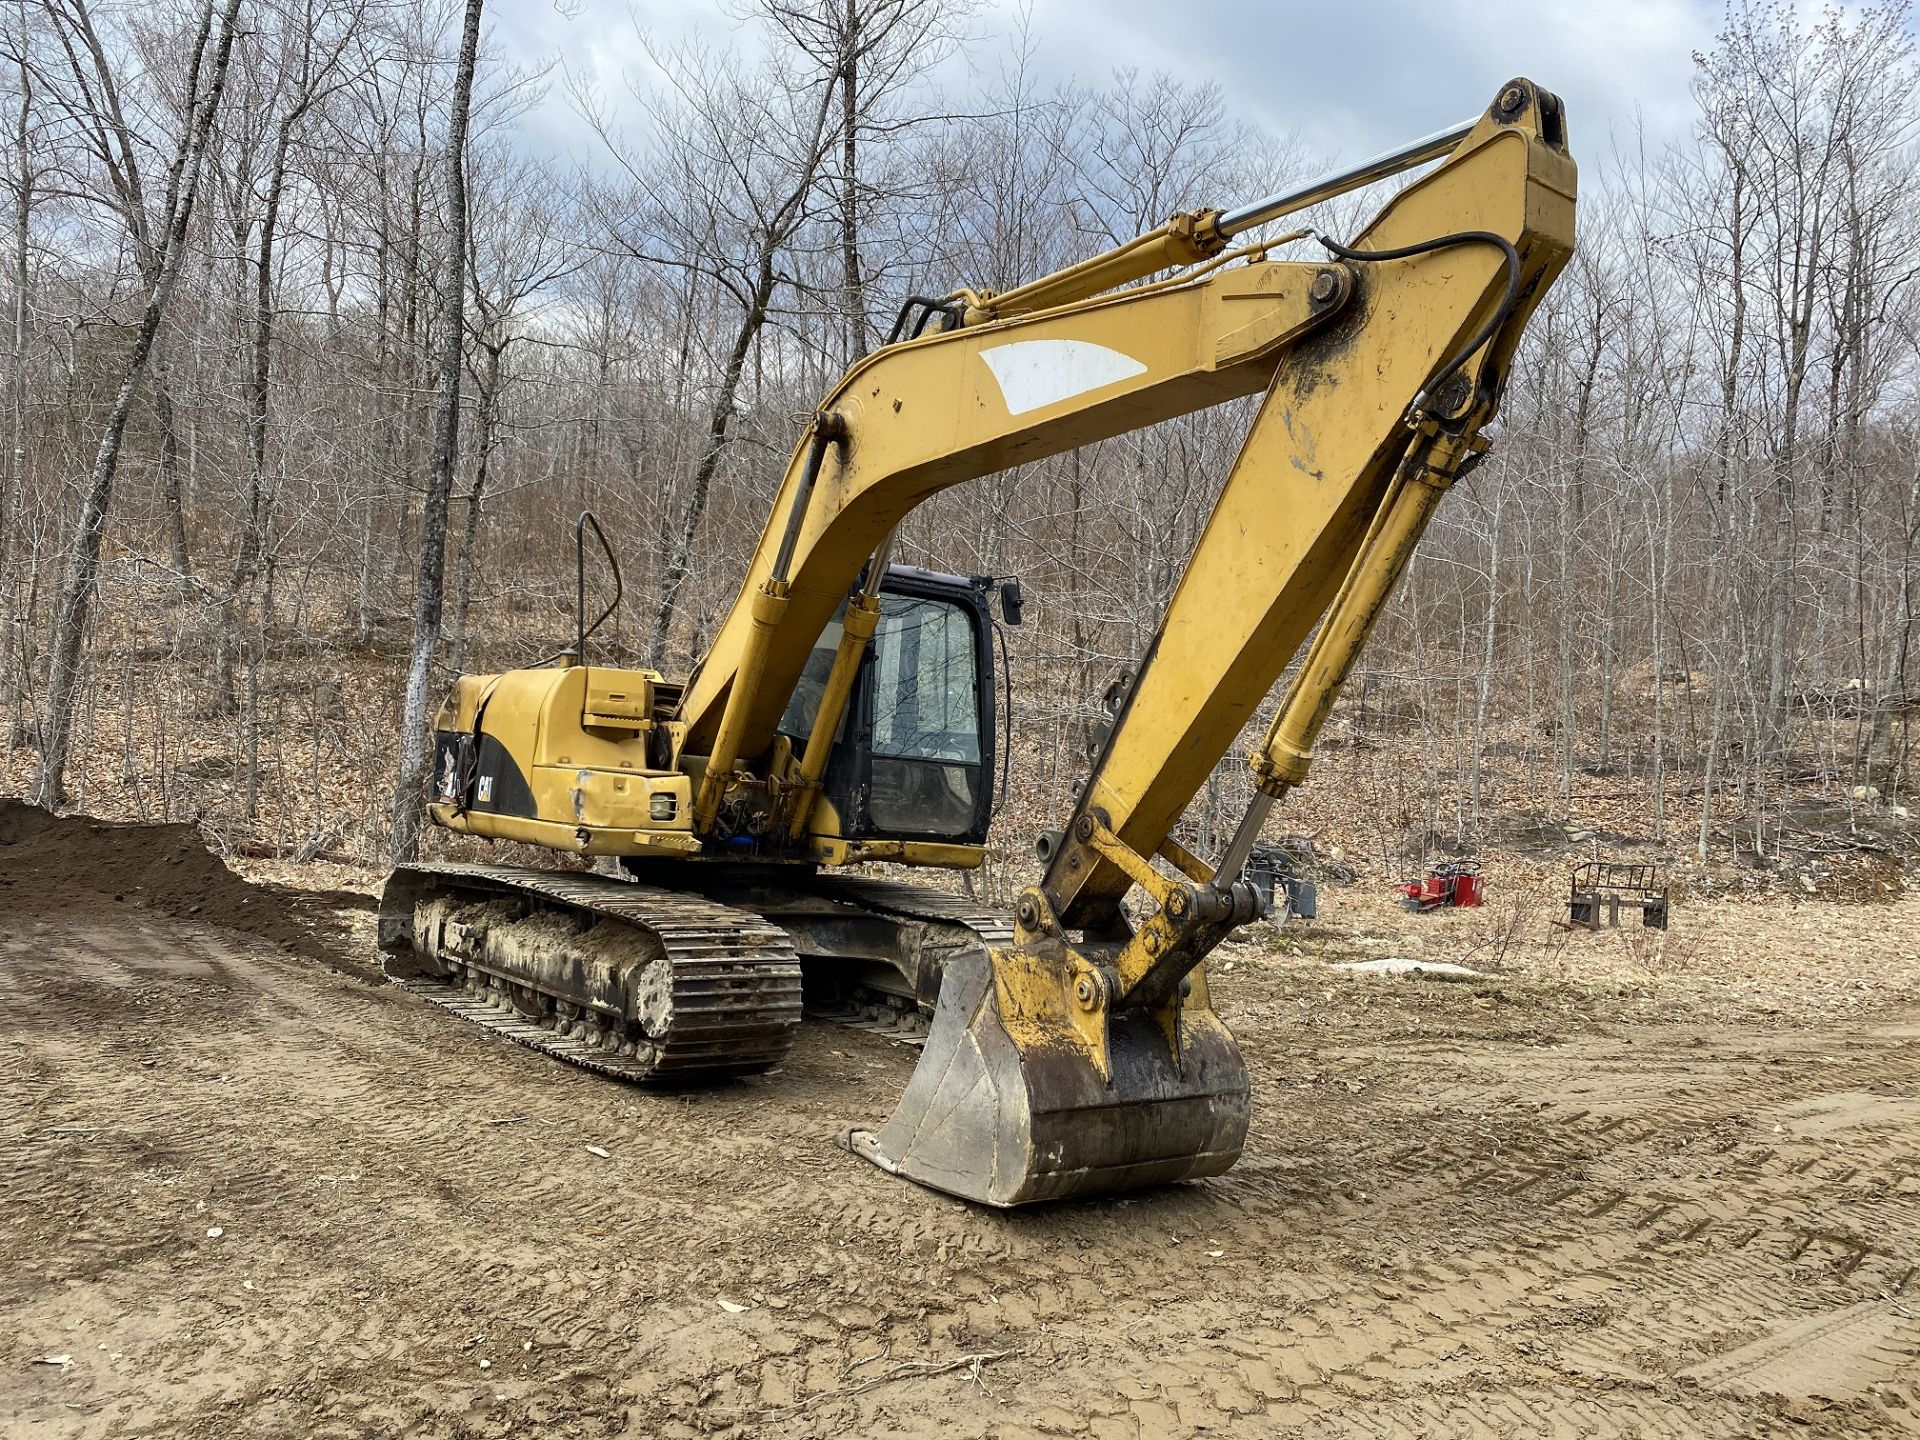 Caterpillar Excavator 315CL 1YD Bucket Stationary w/Thumb, Hrs: 8,003, 3YR Old Swing Motor Bushings, - Image 2 of 10